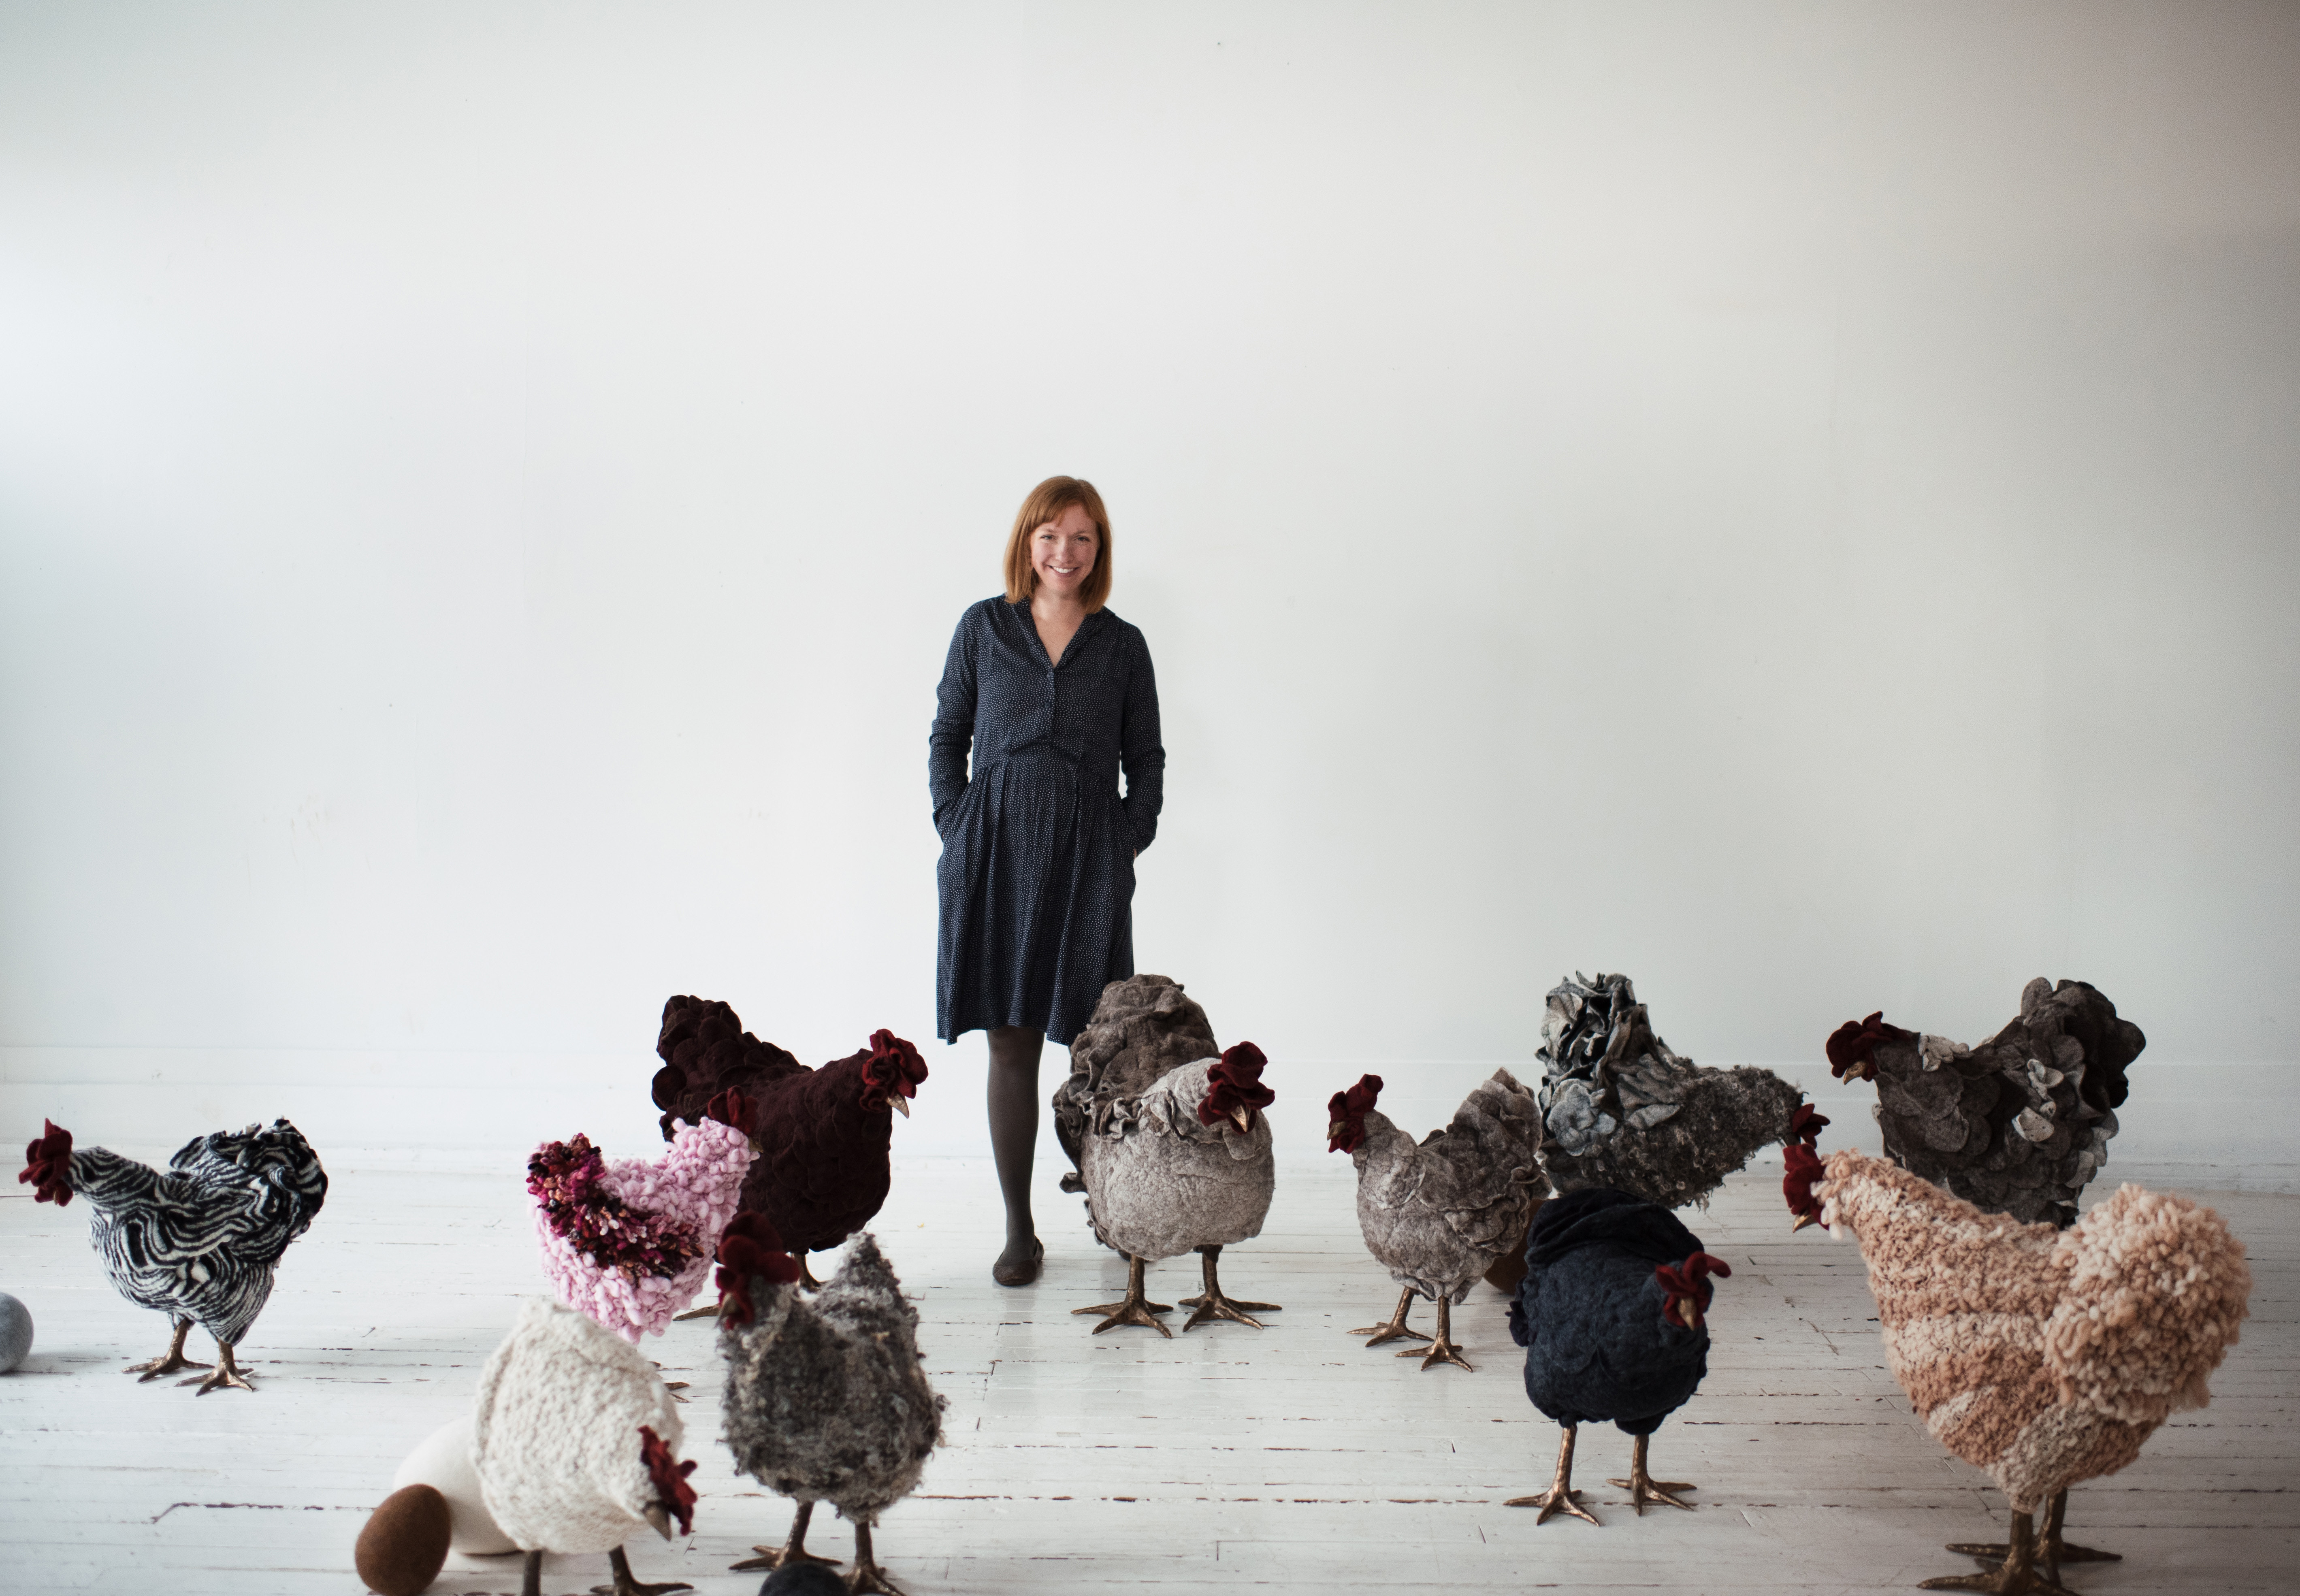 Sally and her chickens